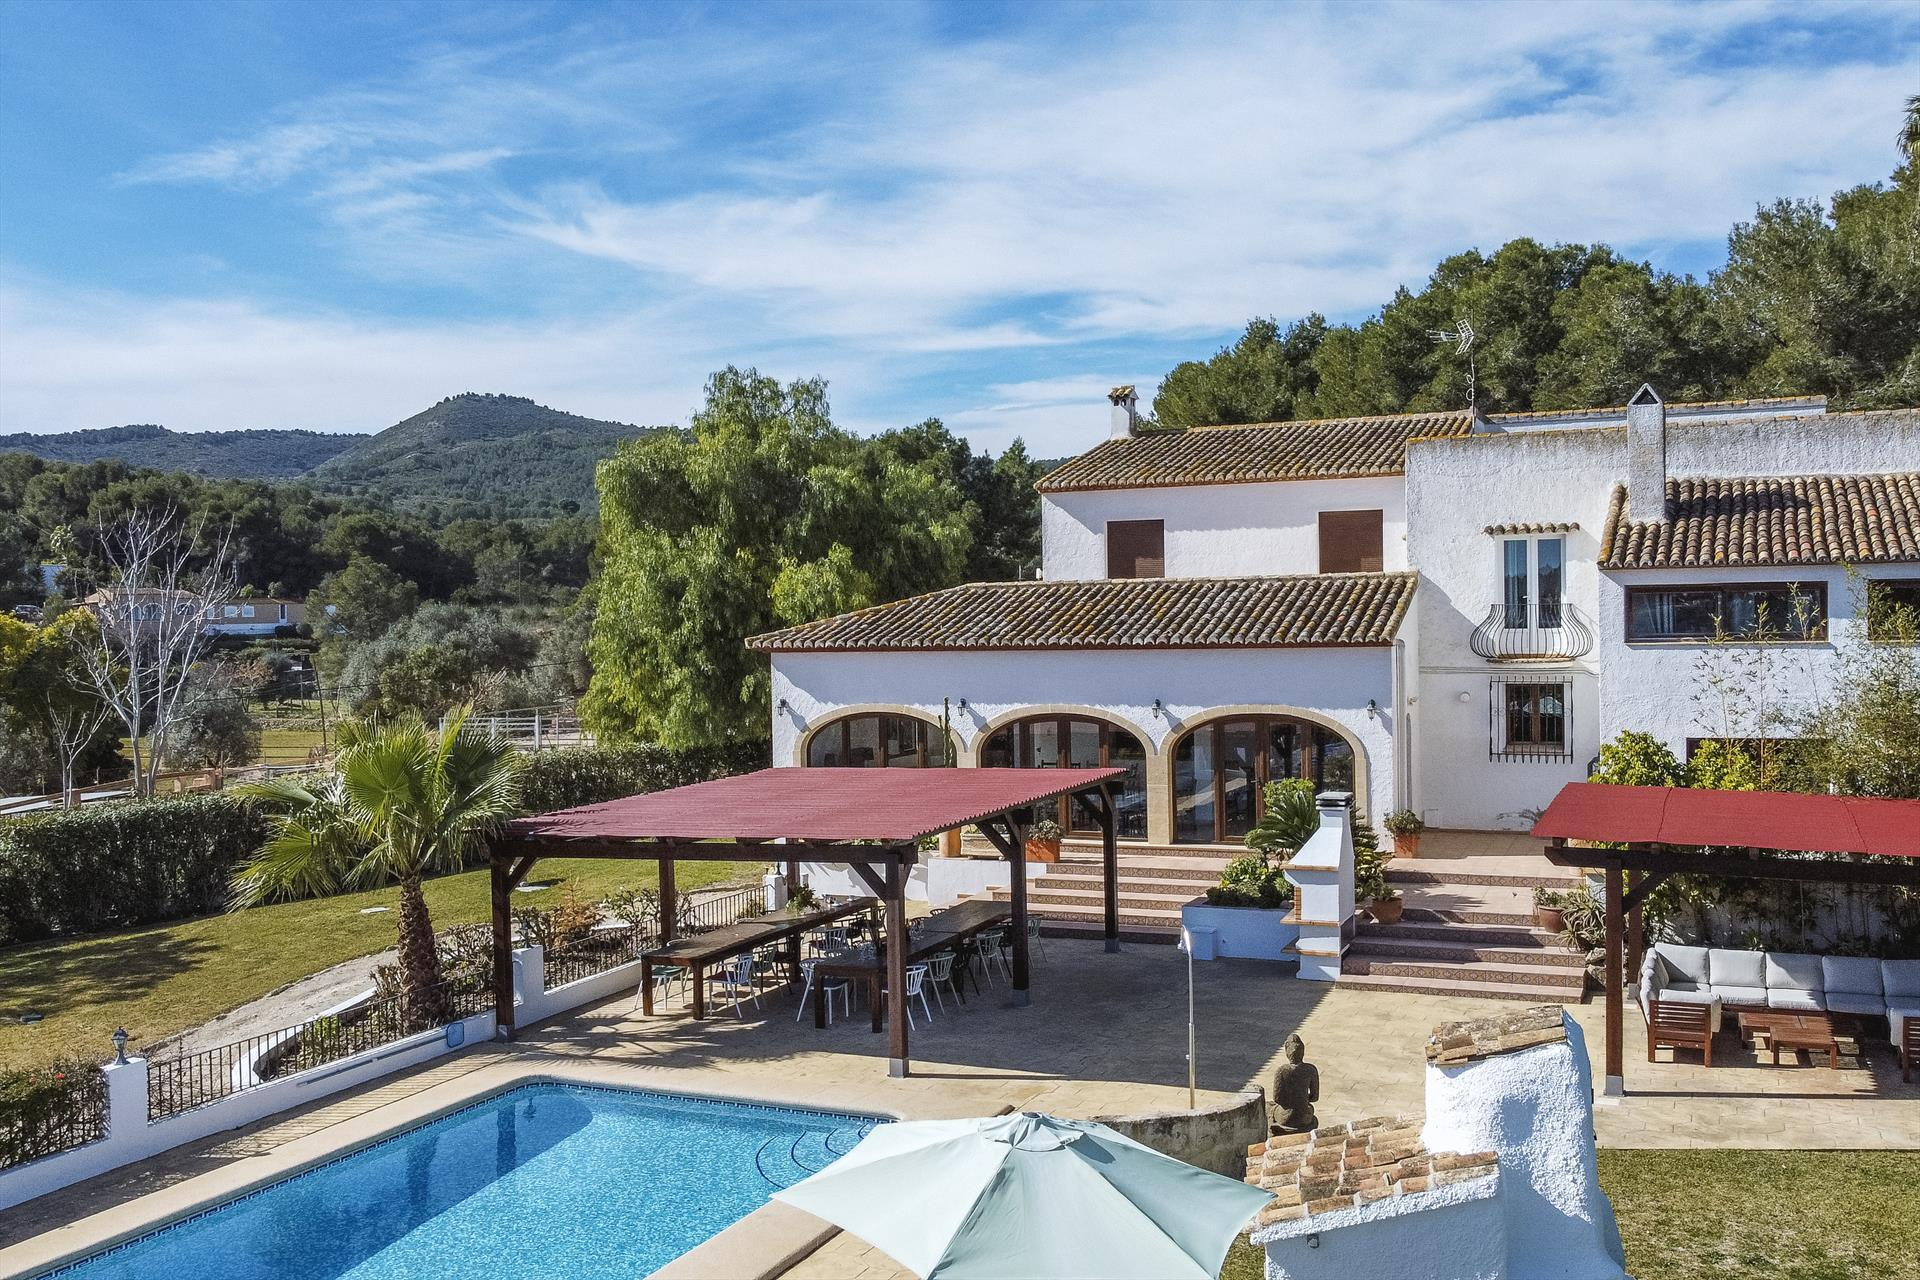 Casa Rosalia 8 pax, Comfortable villa  with private pool in Javea, on the Costa Blanca, Spain for 8 persons.....